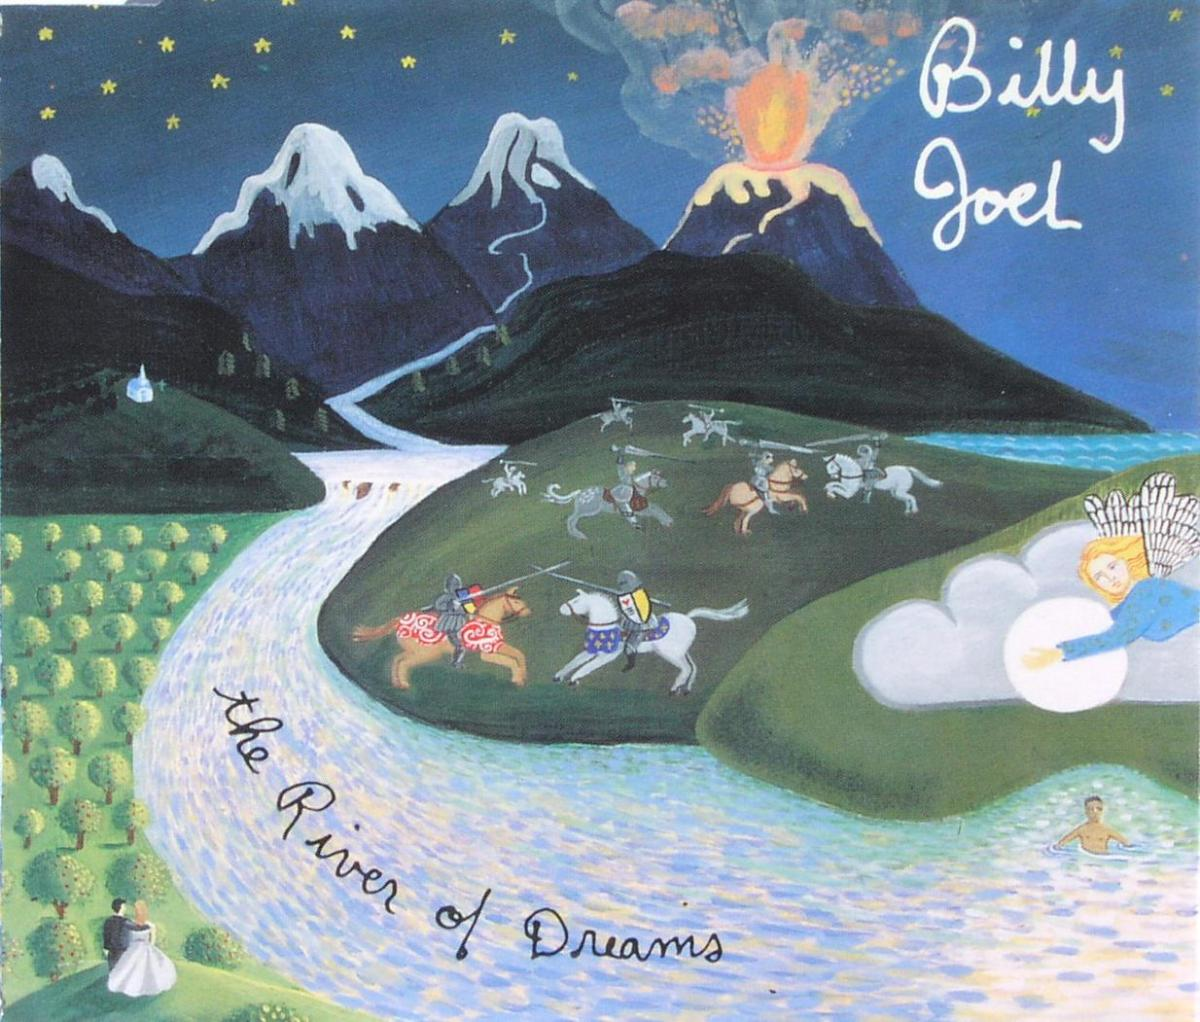 Joel, Billy - The River Of Dreams [CD-Single]